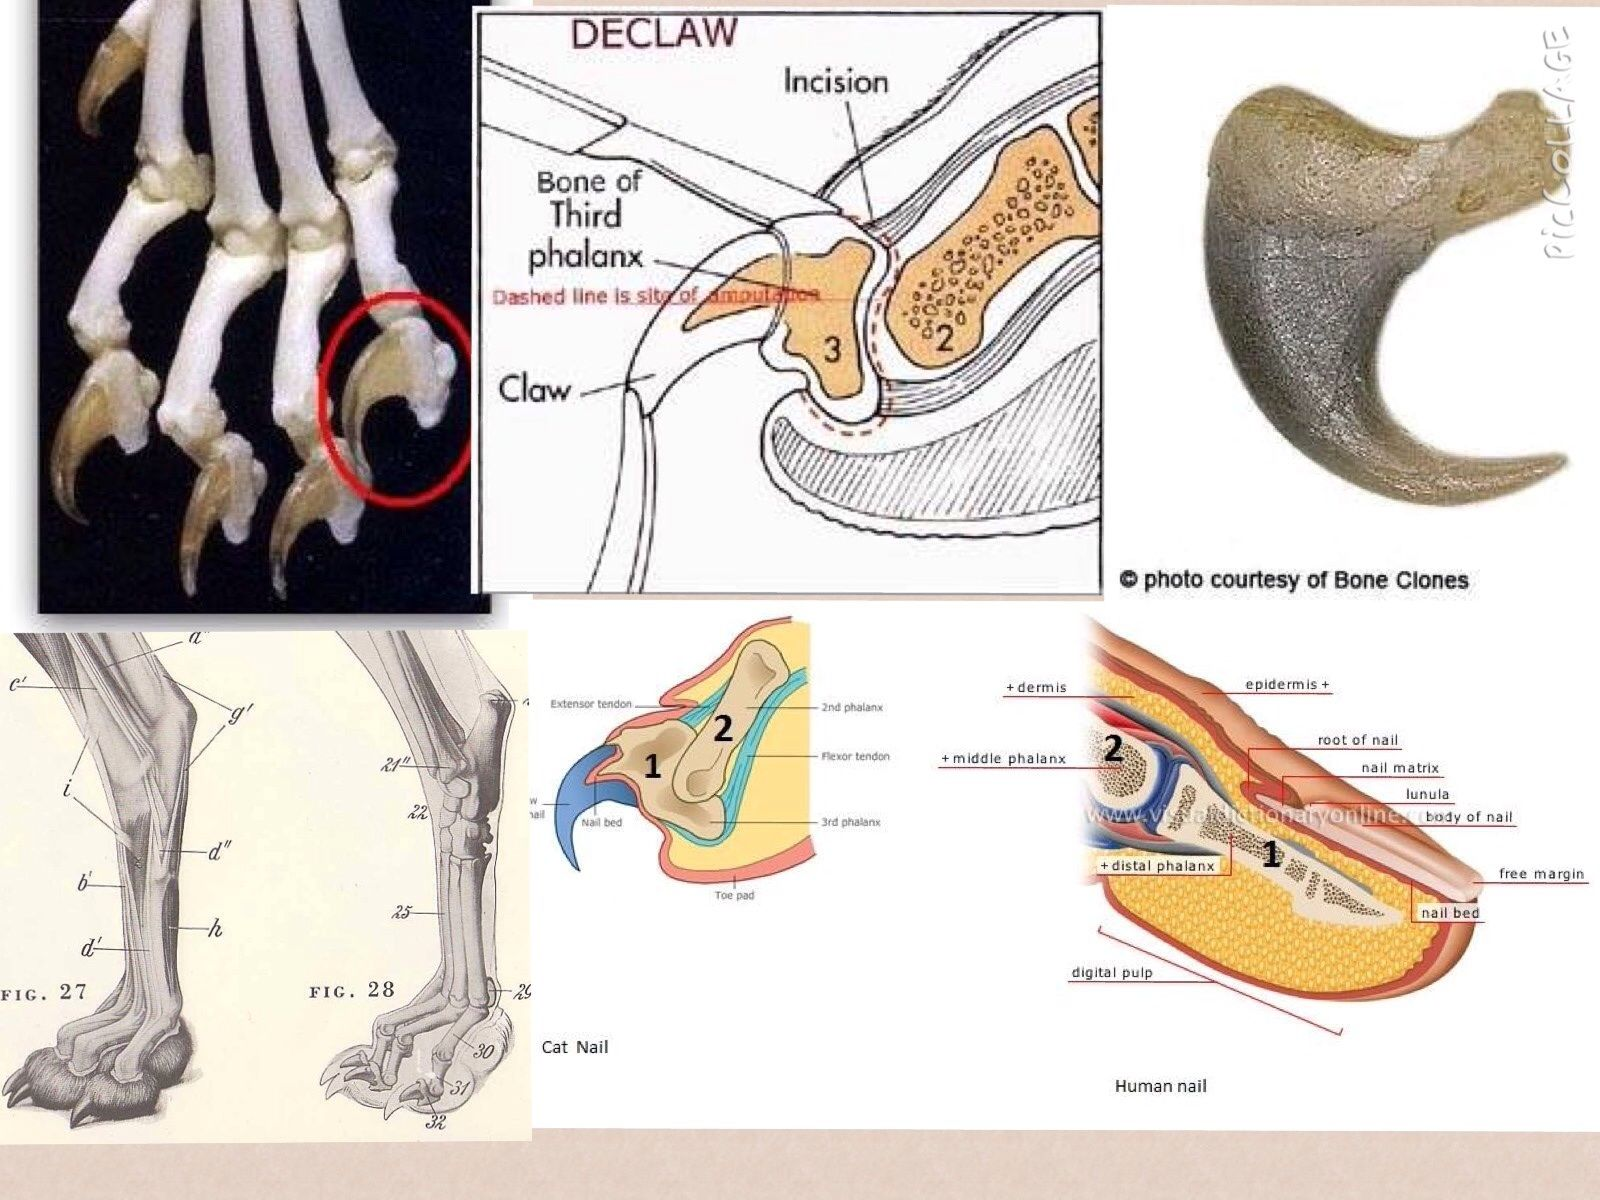 If you are still skeptical that declawing is the removal a